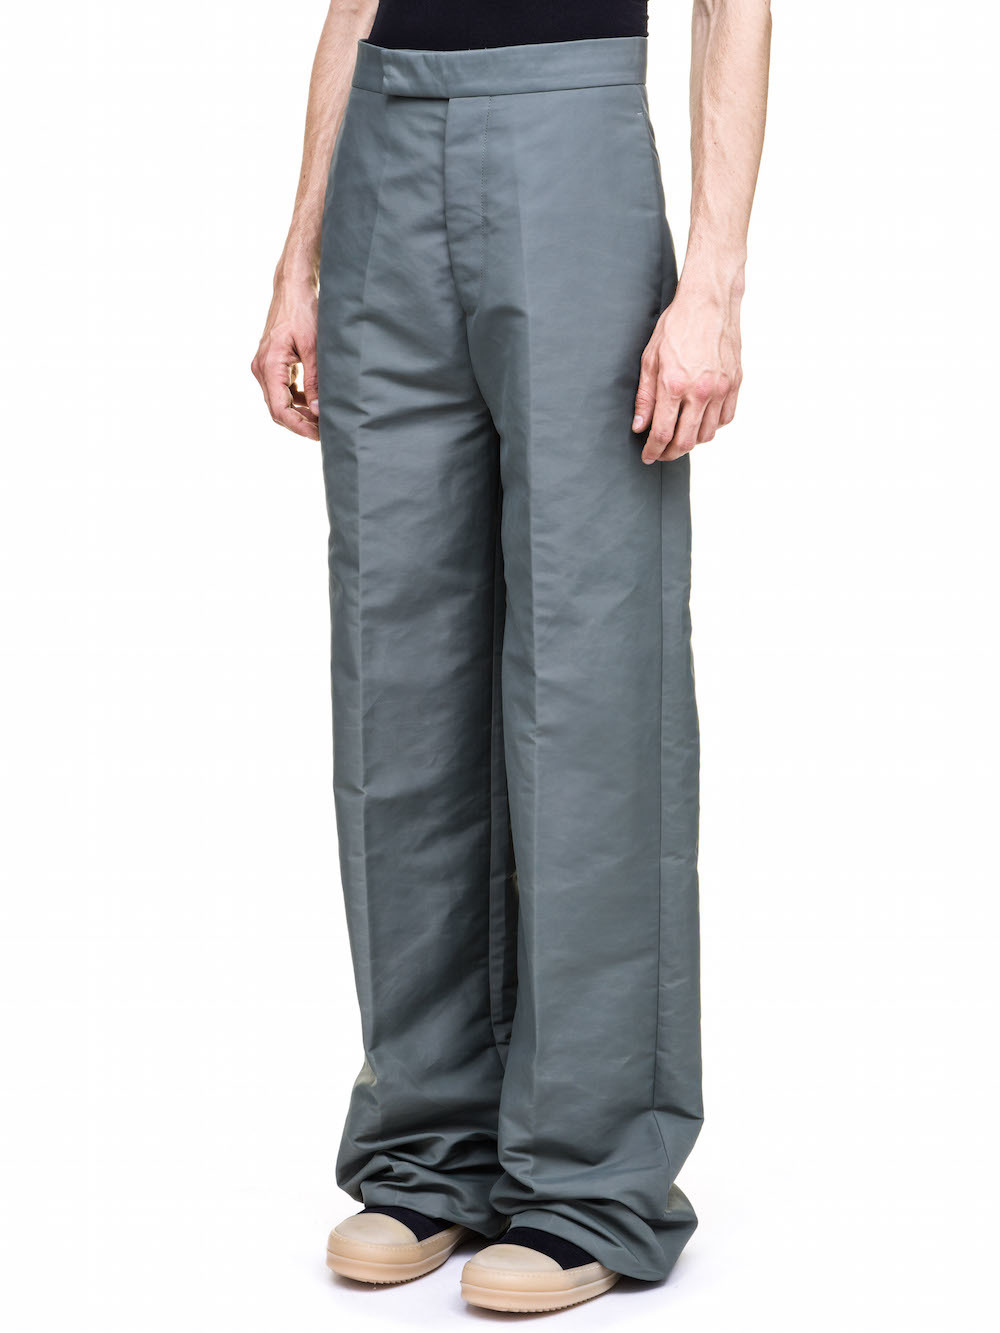 Soul Train Pants Rick Owens hYdD8